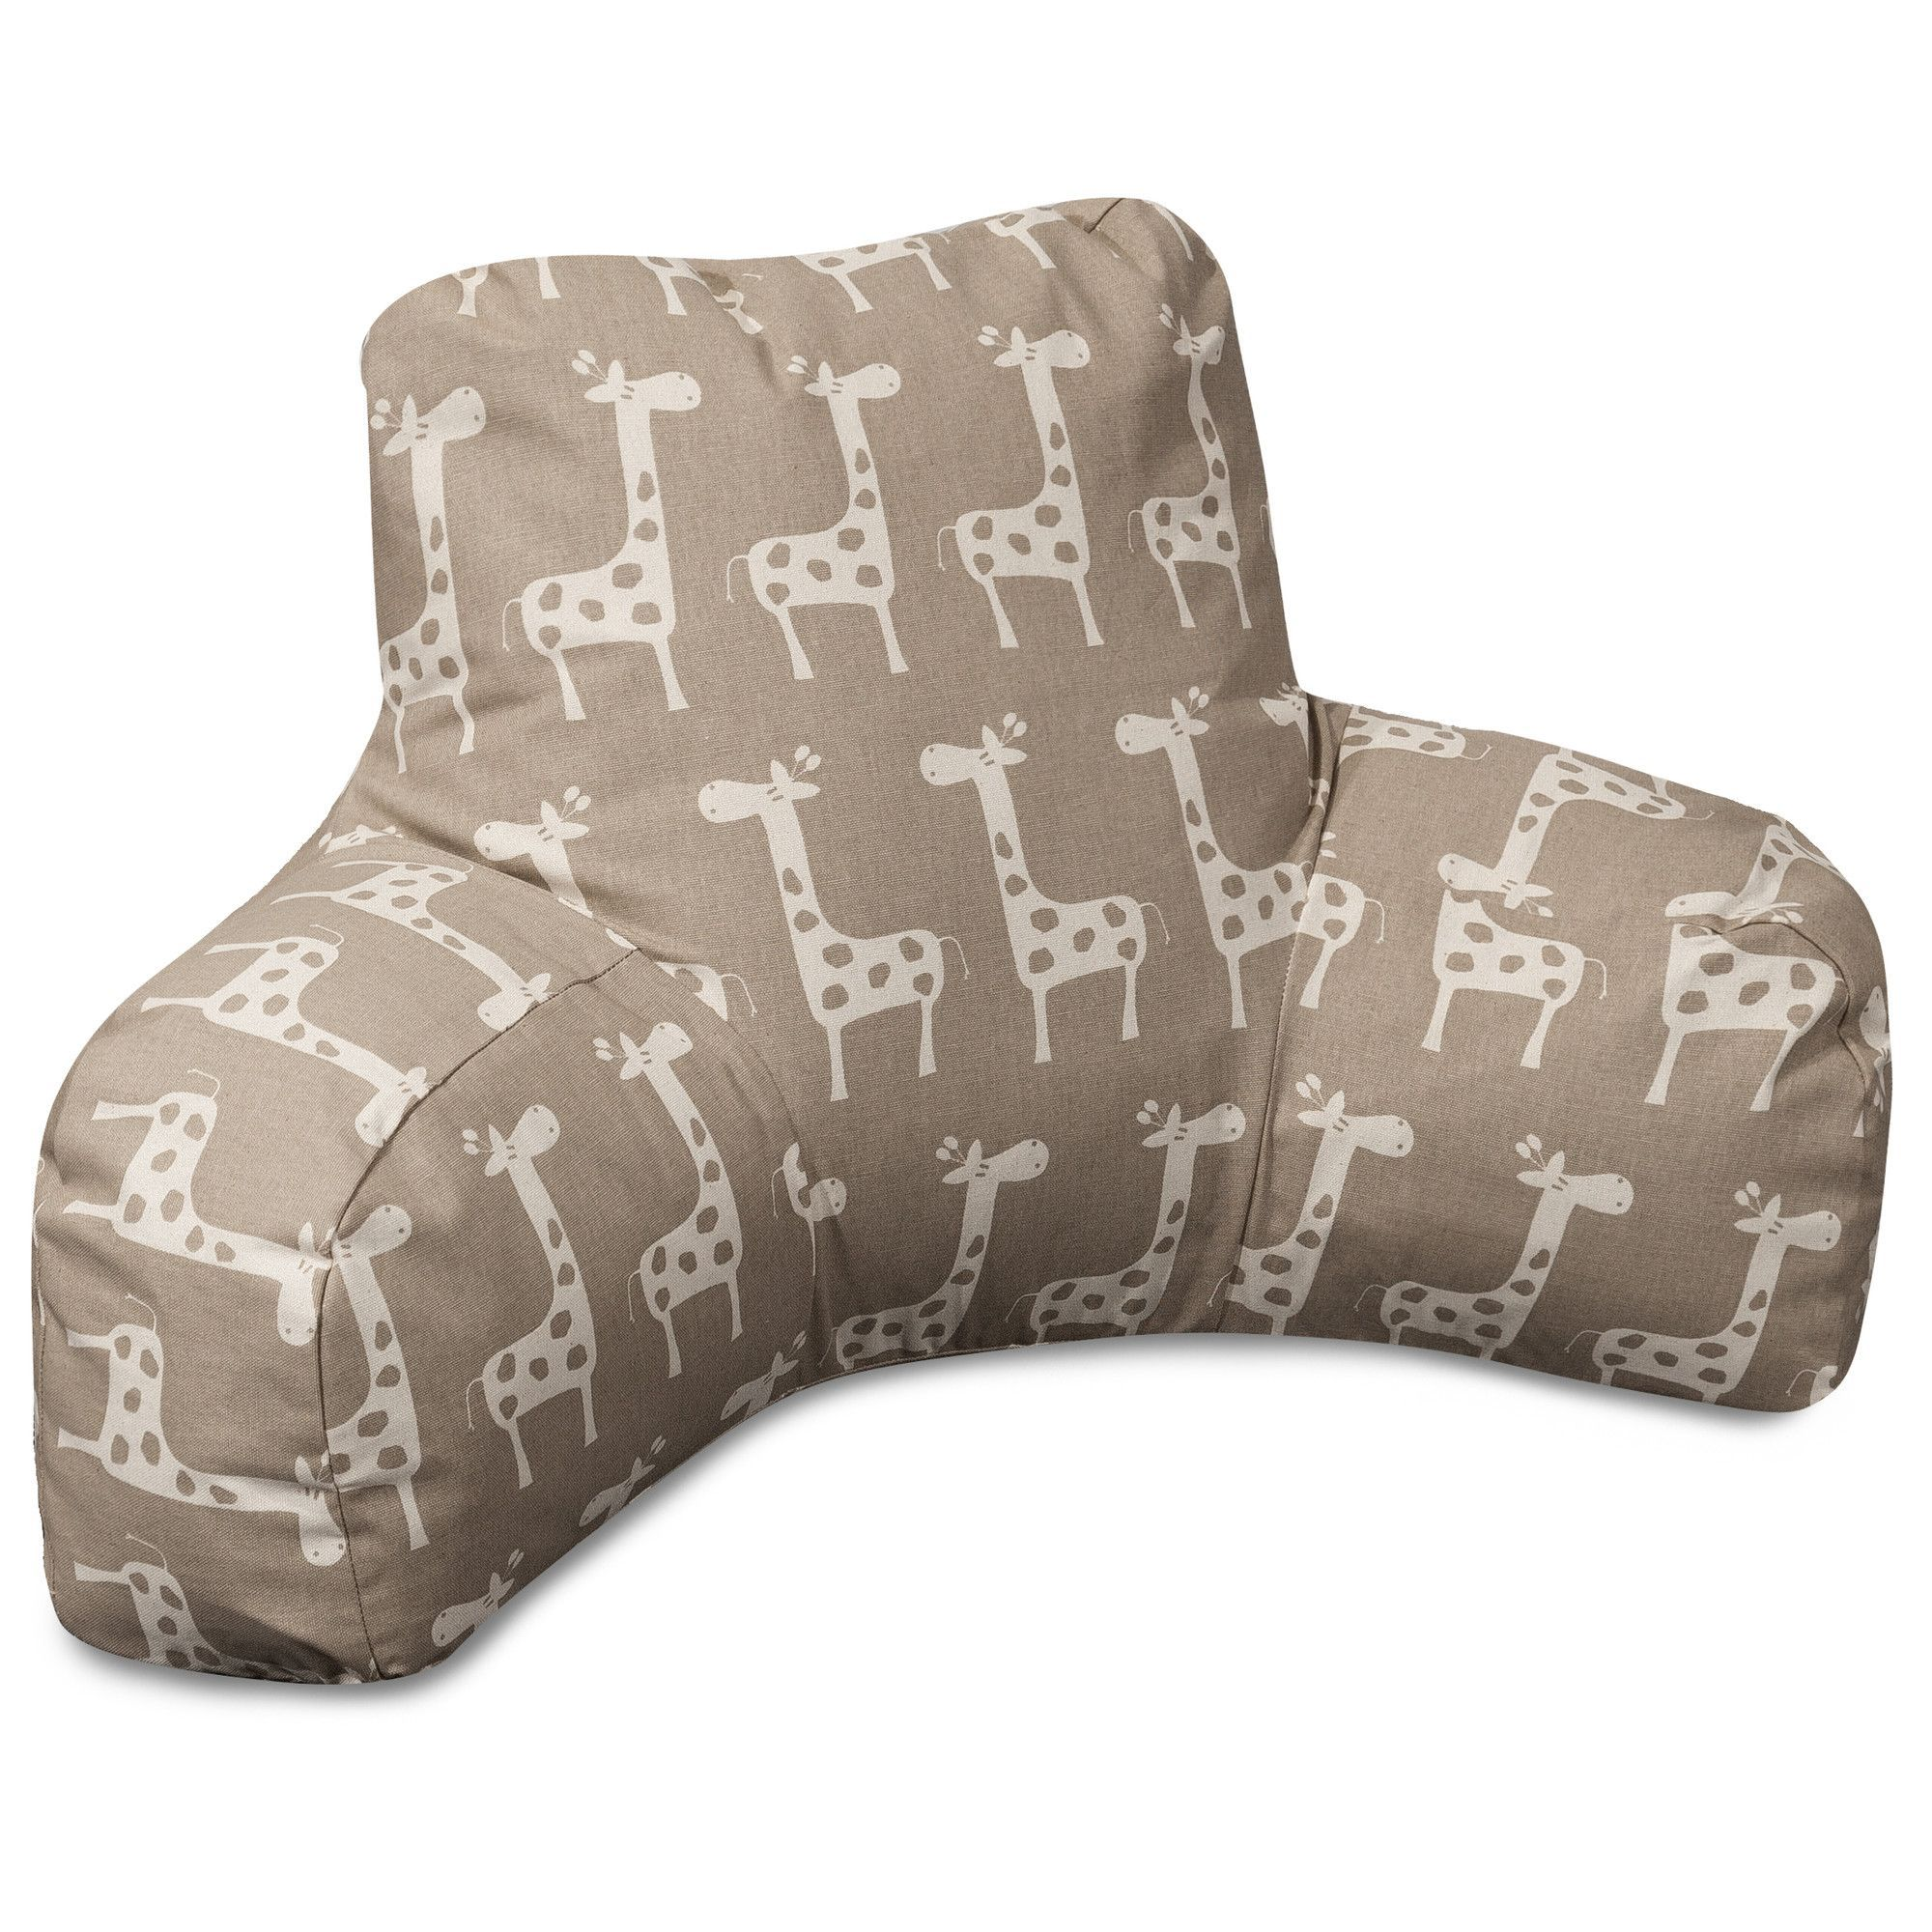 Stretch bed rest pillow bed rest pillow bed rest and stretches